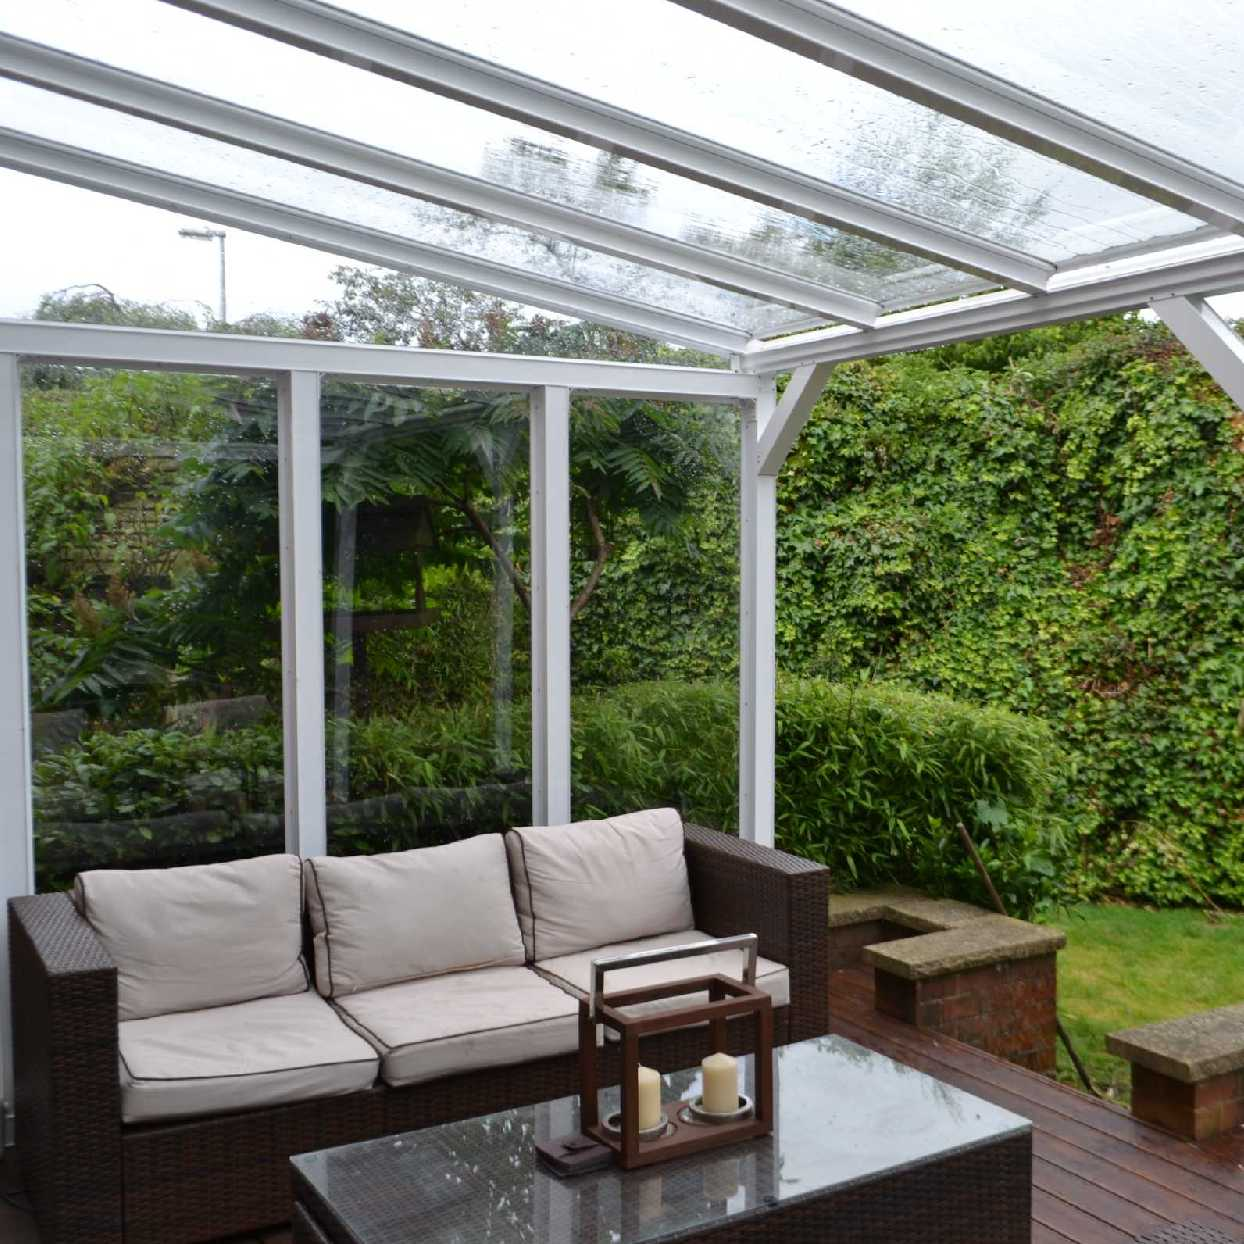 Great selection of Omega Smart White Lean-To Canopy with 16mm Polycarbonate Glazing - 2.1m (W) x 4.0m (P), (2) Supporting Posts